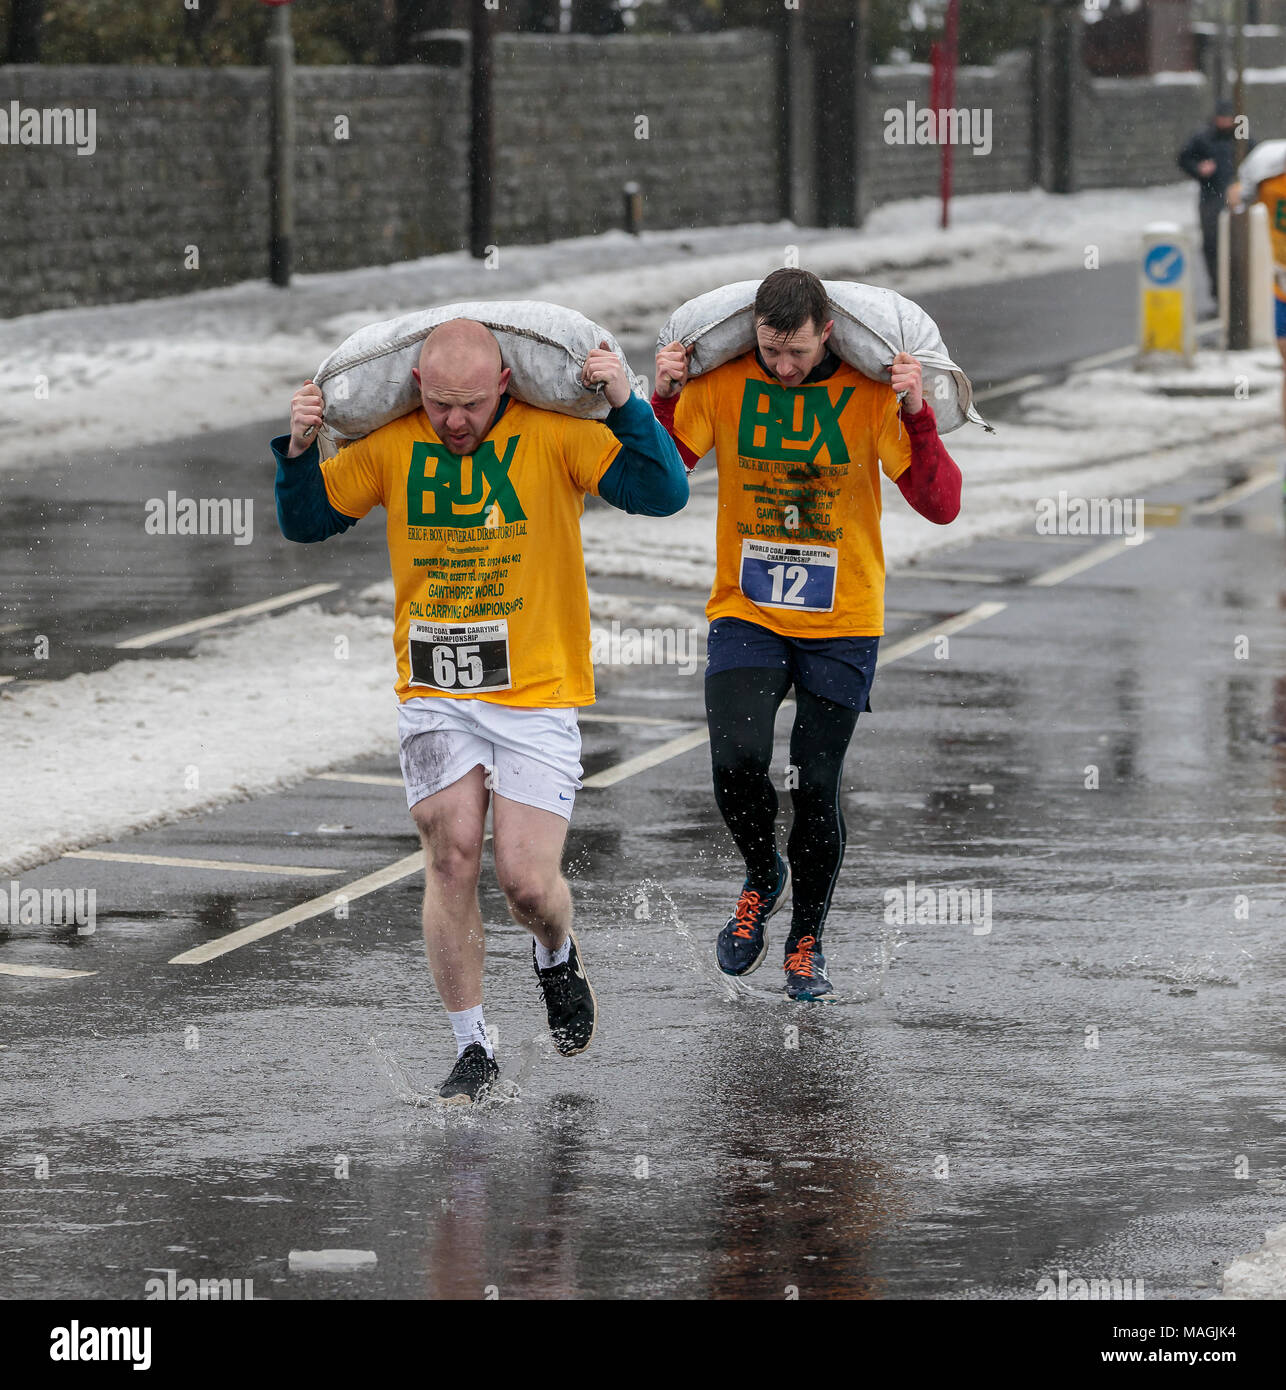 Gawthorpe, West Yorkshire, UK. 2nd April 2018. Leading runners in the first of two men's races. The World Coal Carrying Championships take place every year on Easter Monday, when competitors, carrying sacks of coal, race over a 1012 m uphill course through the former mining village near Wakefield. Male competitors carry 50kg sacks and females 20kg. Women's winner was Danielle Sidebottom, Men's winner was Andrew Corrigan. © Ian Wray/Alamy live news - Stock Image